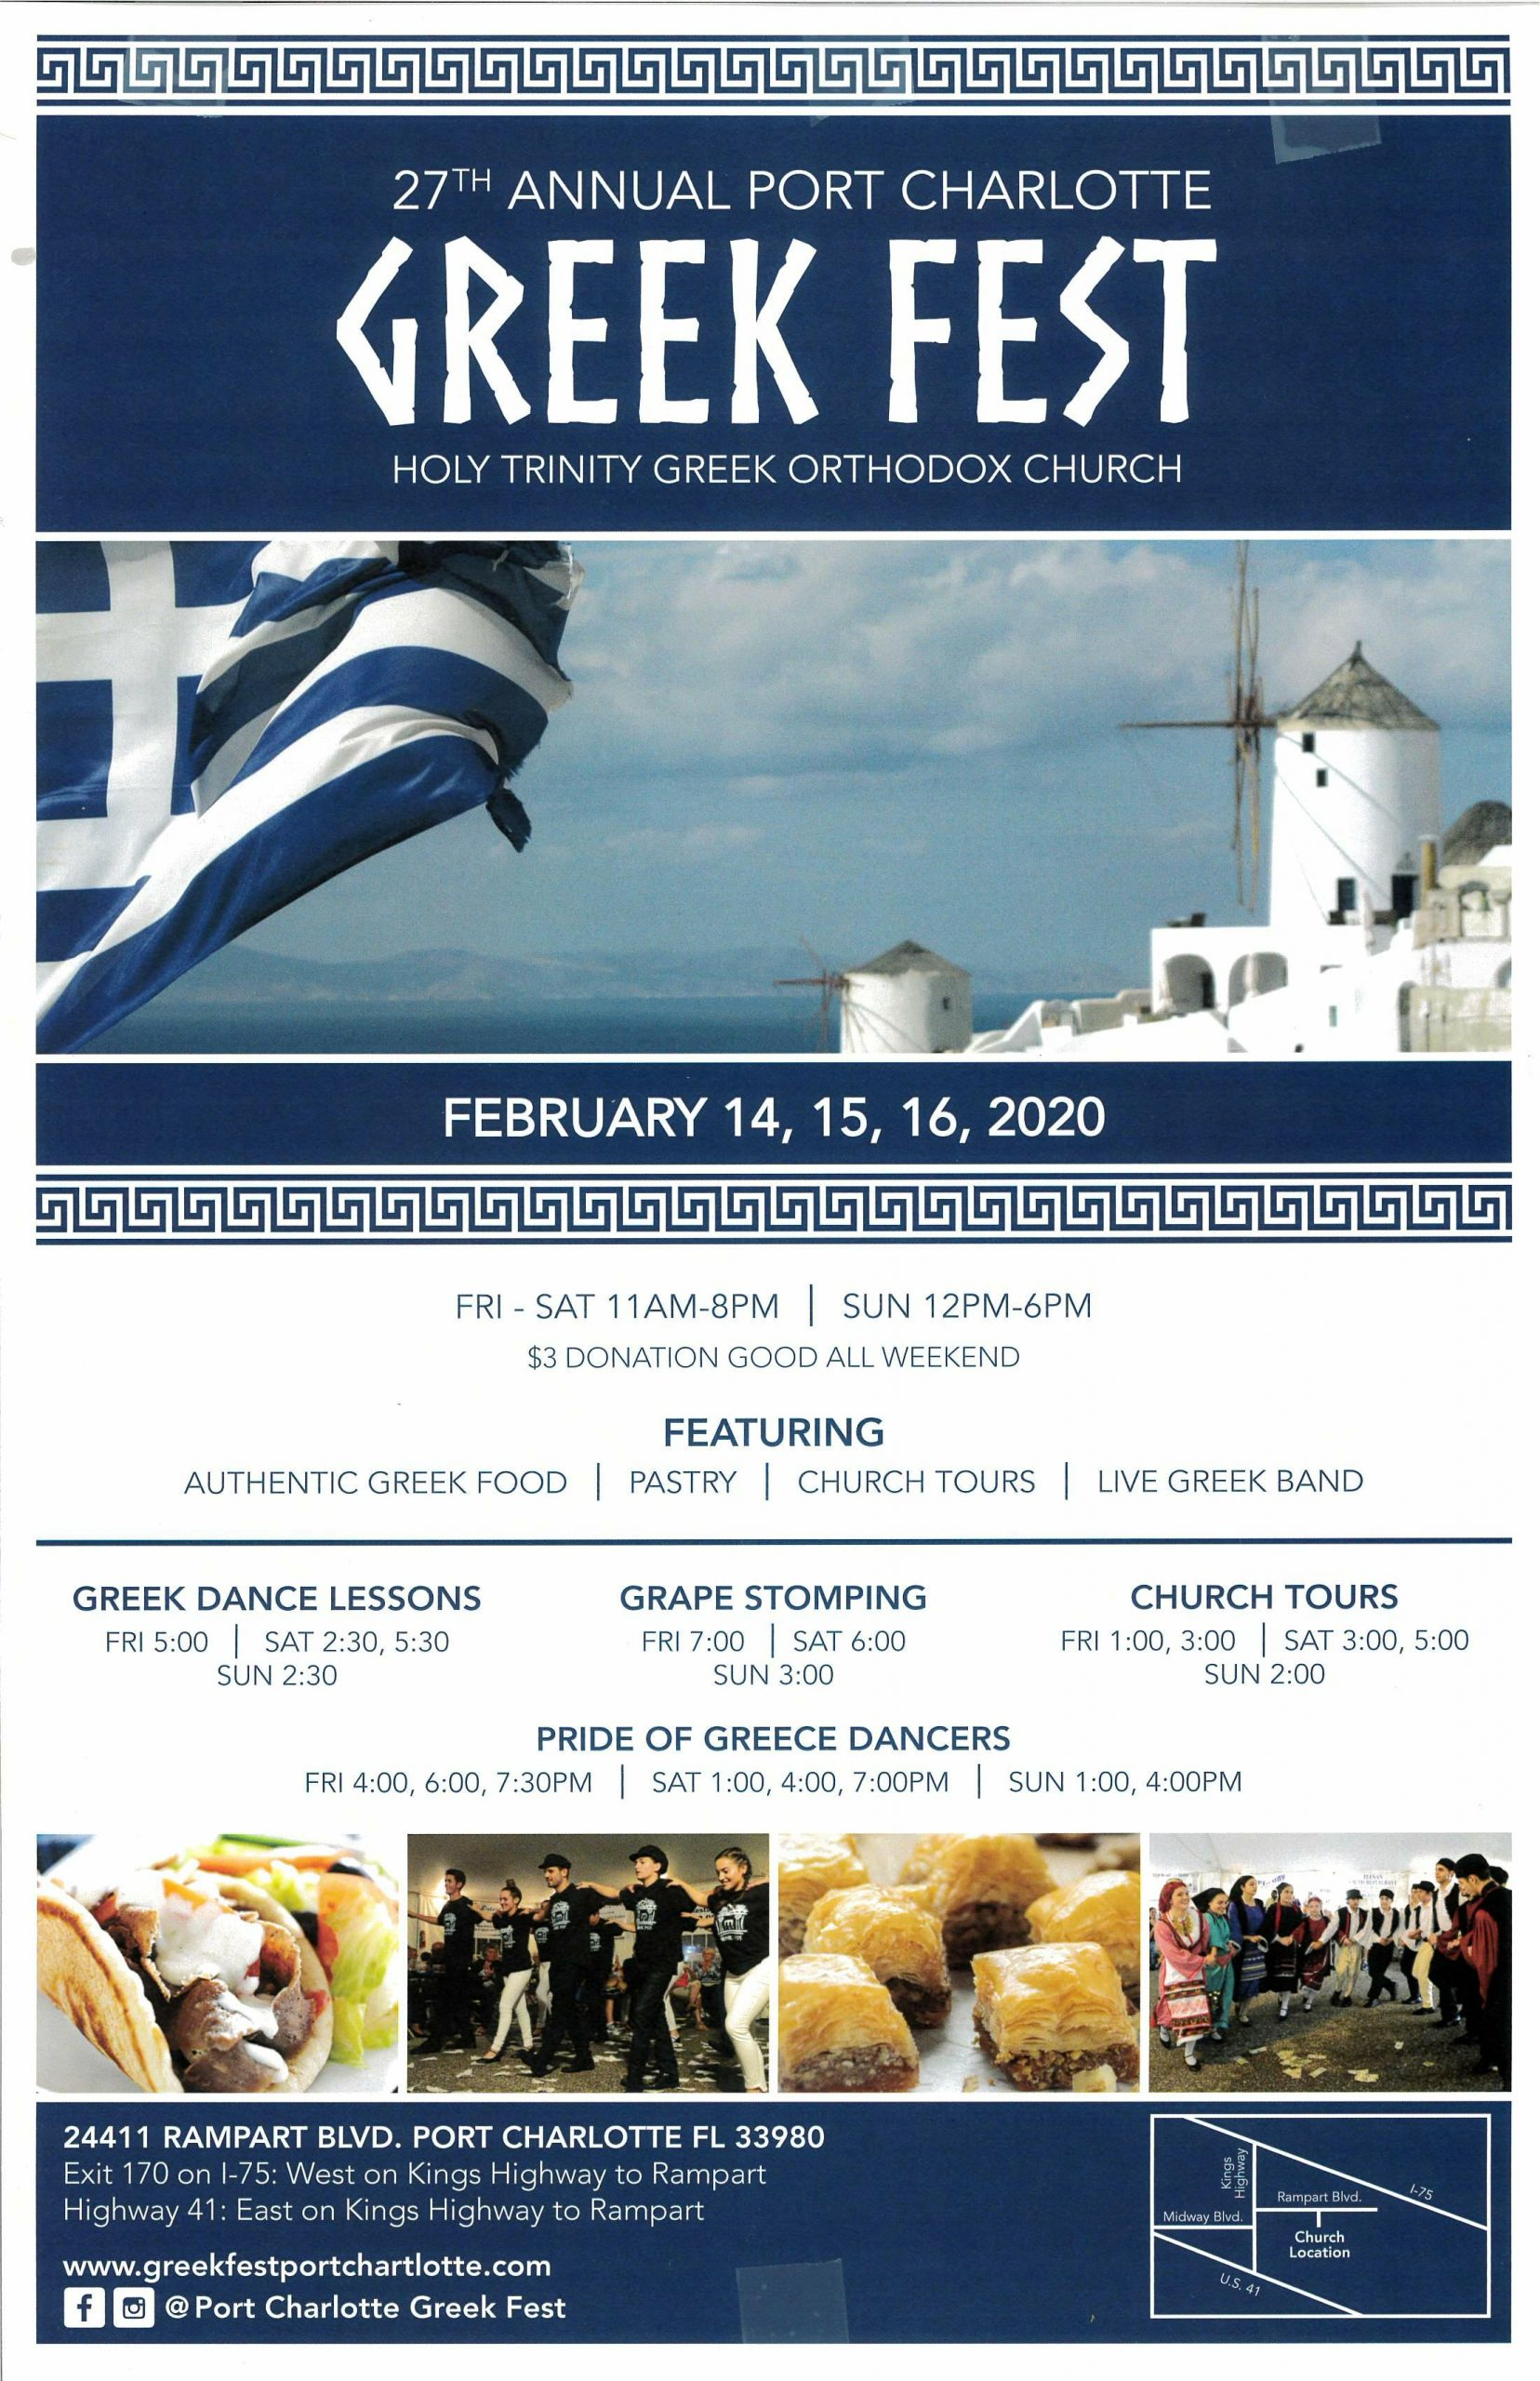 27th Annual Port Charlotte GREEK FEST